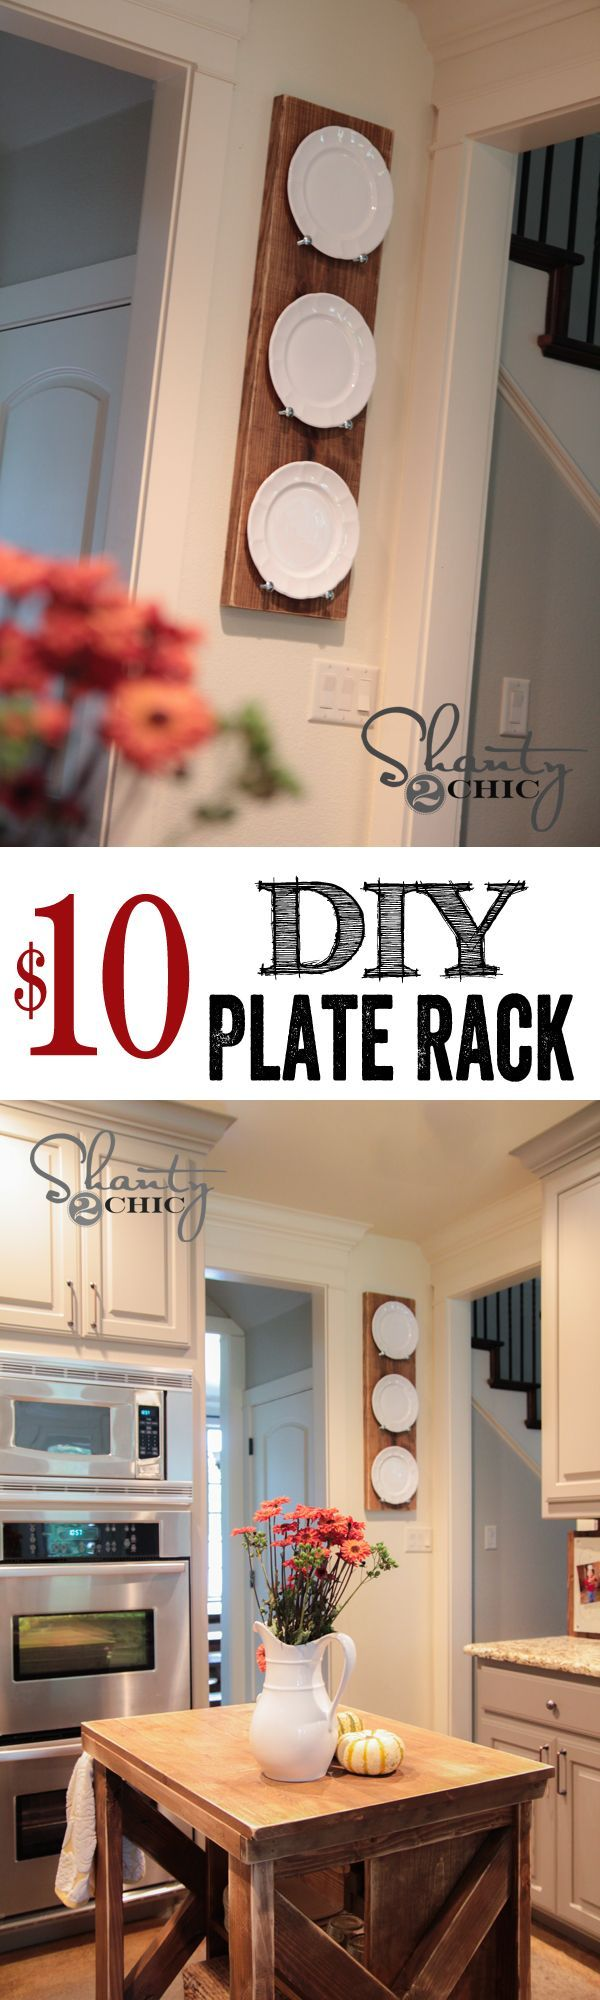 Best 25+ Plate racks ideas on Pinterest | Small kitchen cabinets ...